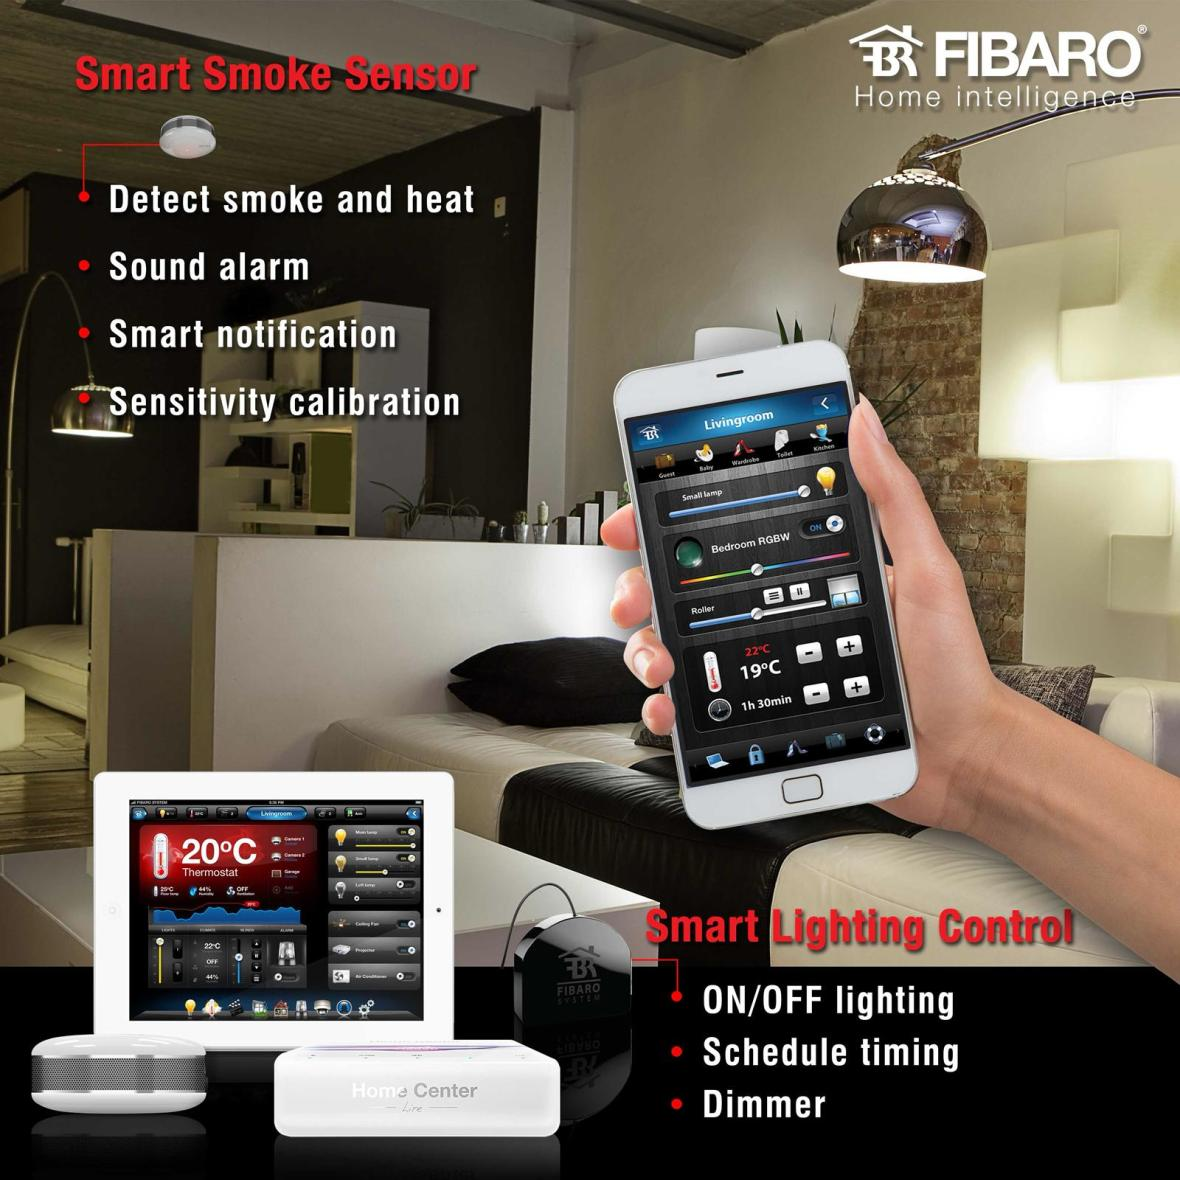 Belgravia Green Belgravia Green Fibaro Home Intelligence App Smart Smoke Sensor Detector & Smart Lighting Control, developer sales, sales team, clara heng